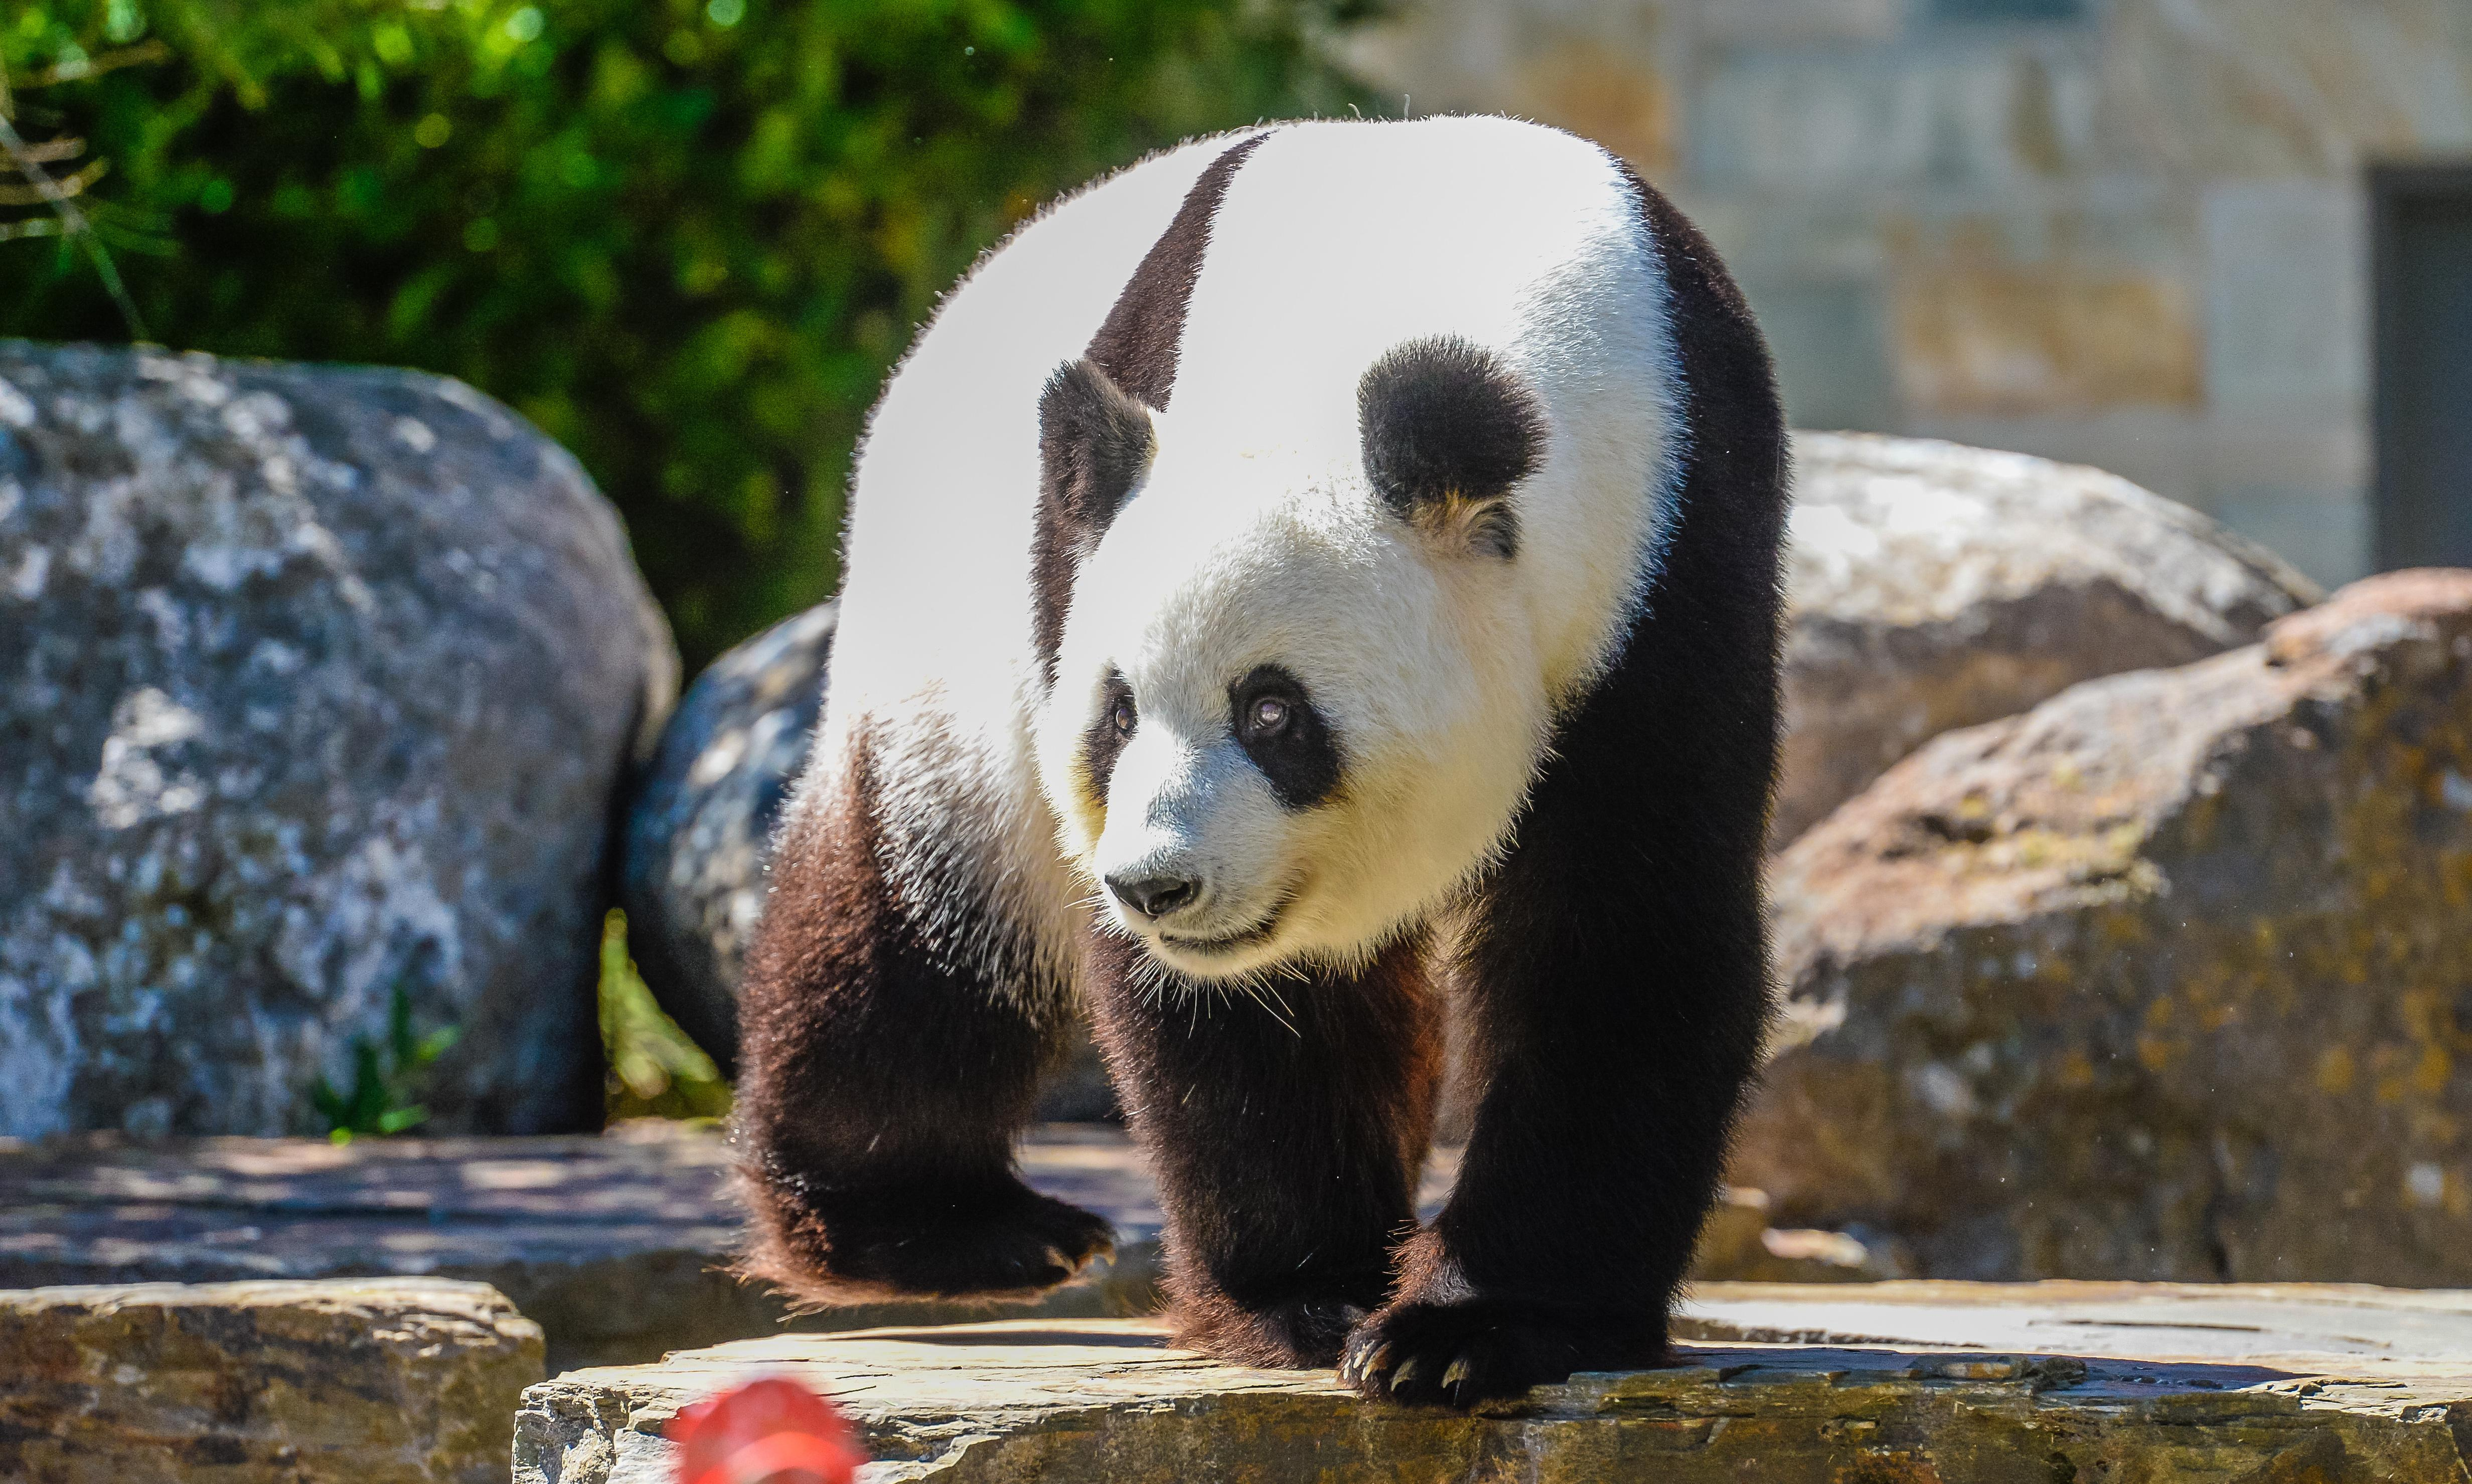 Pandas Wang Wang and Fu Ni to stay in Adelaide zoo under Labor plan